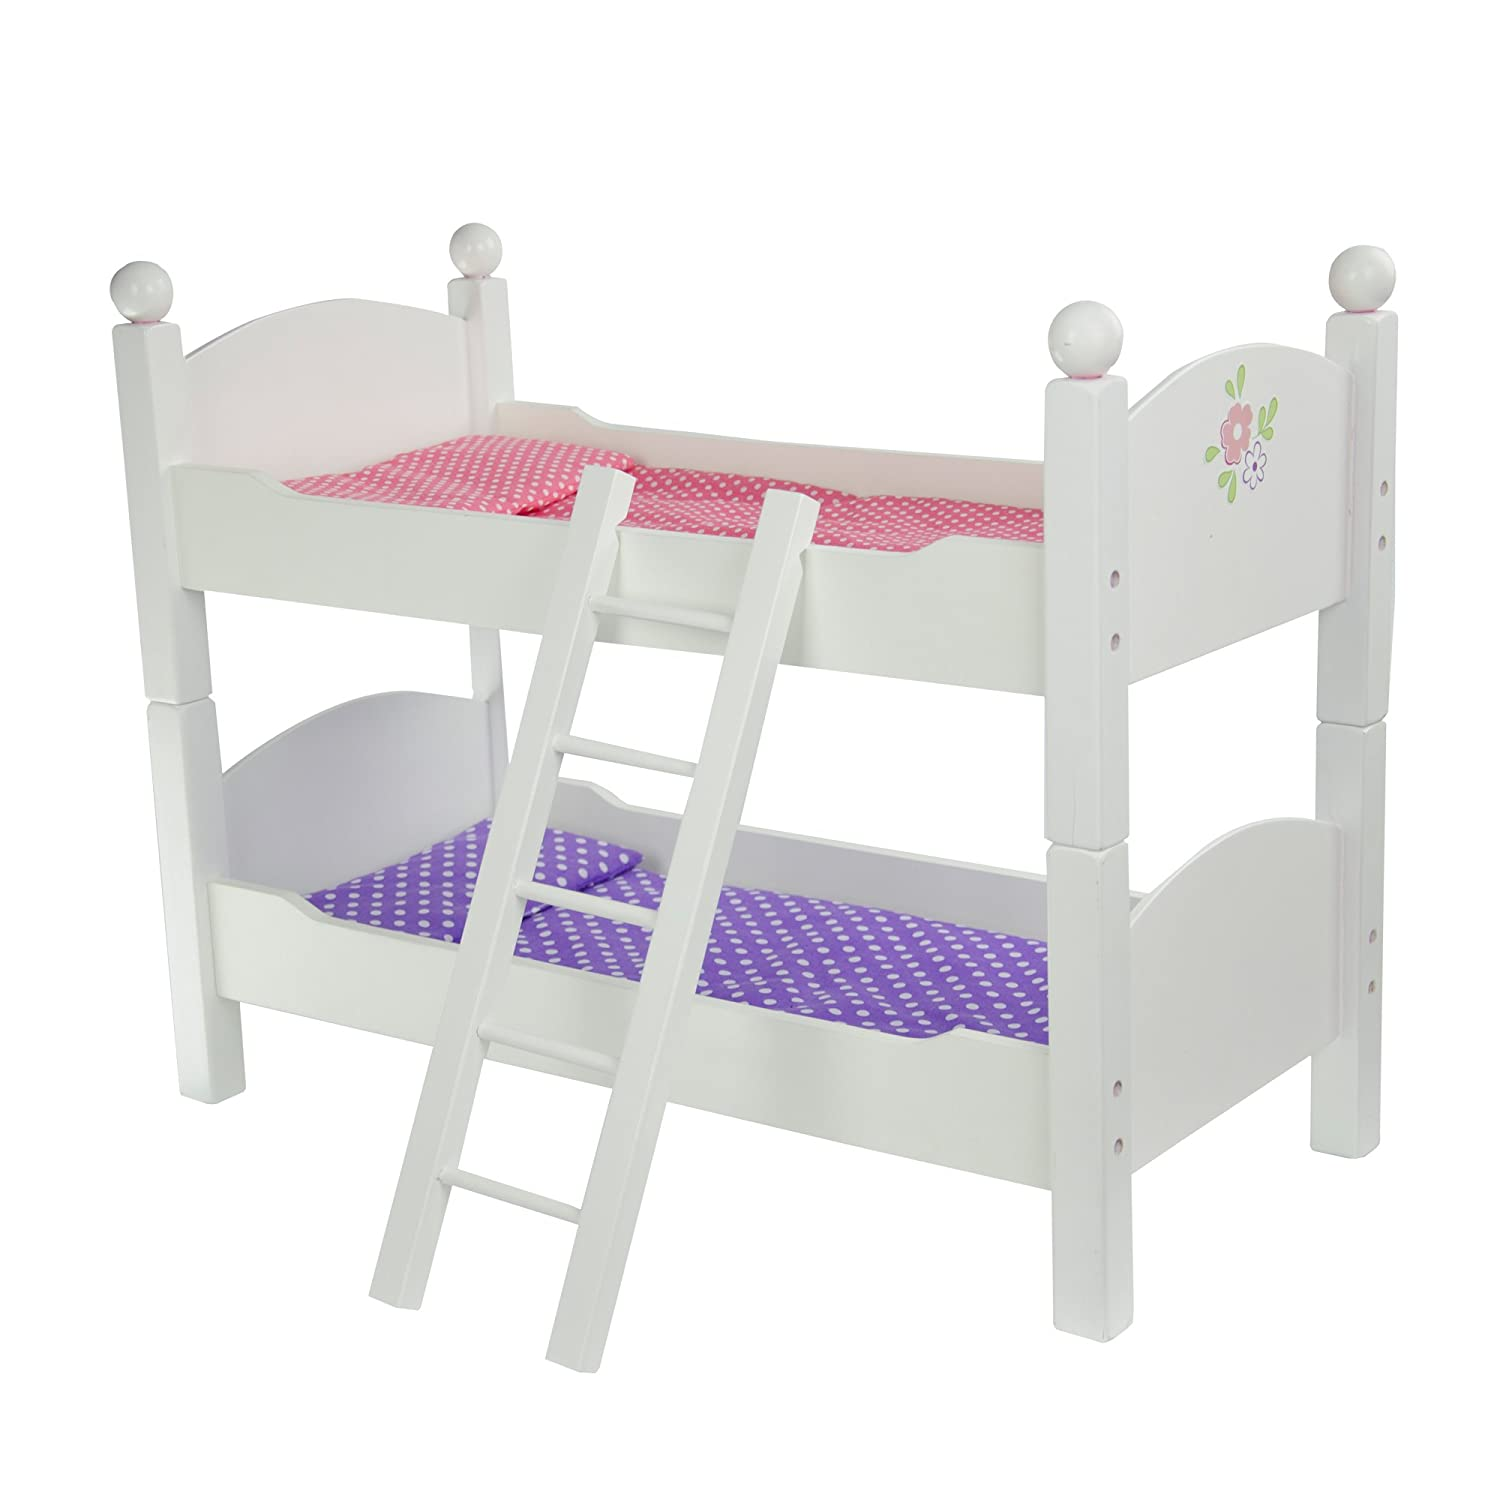 beds bunk bed market doll solid the southern picture white of wooden